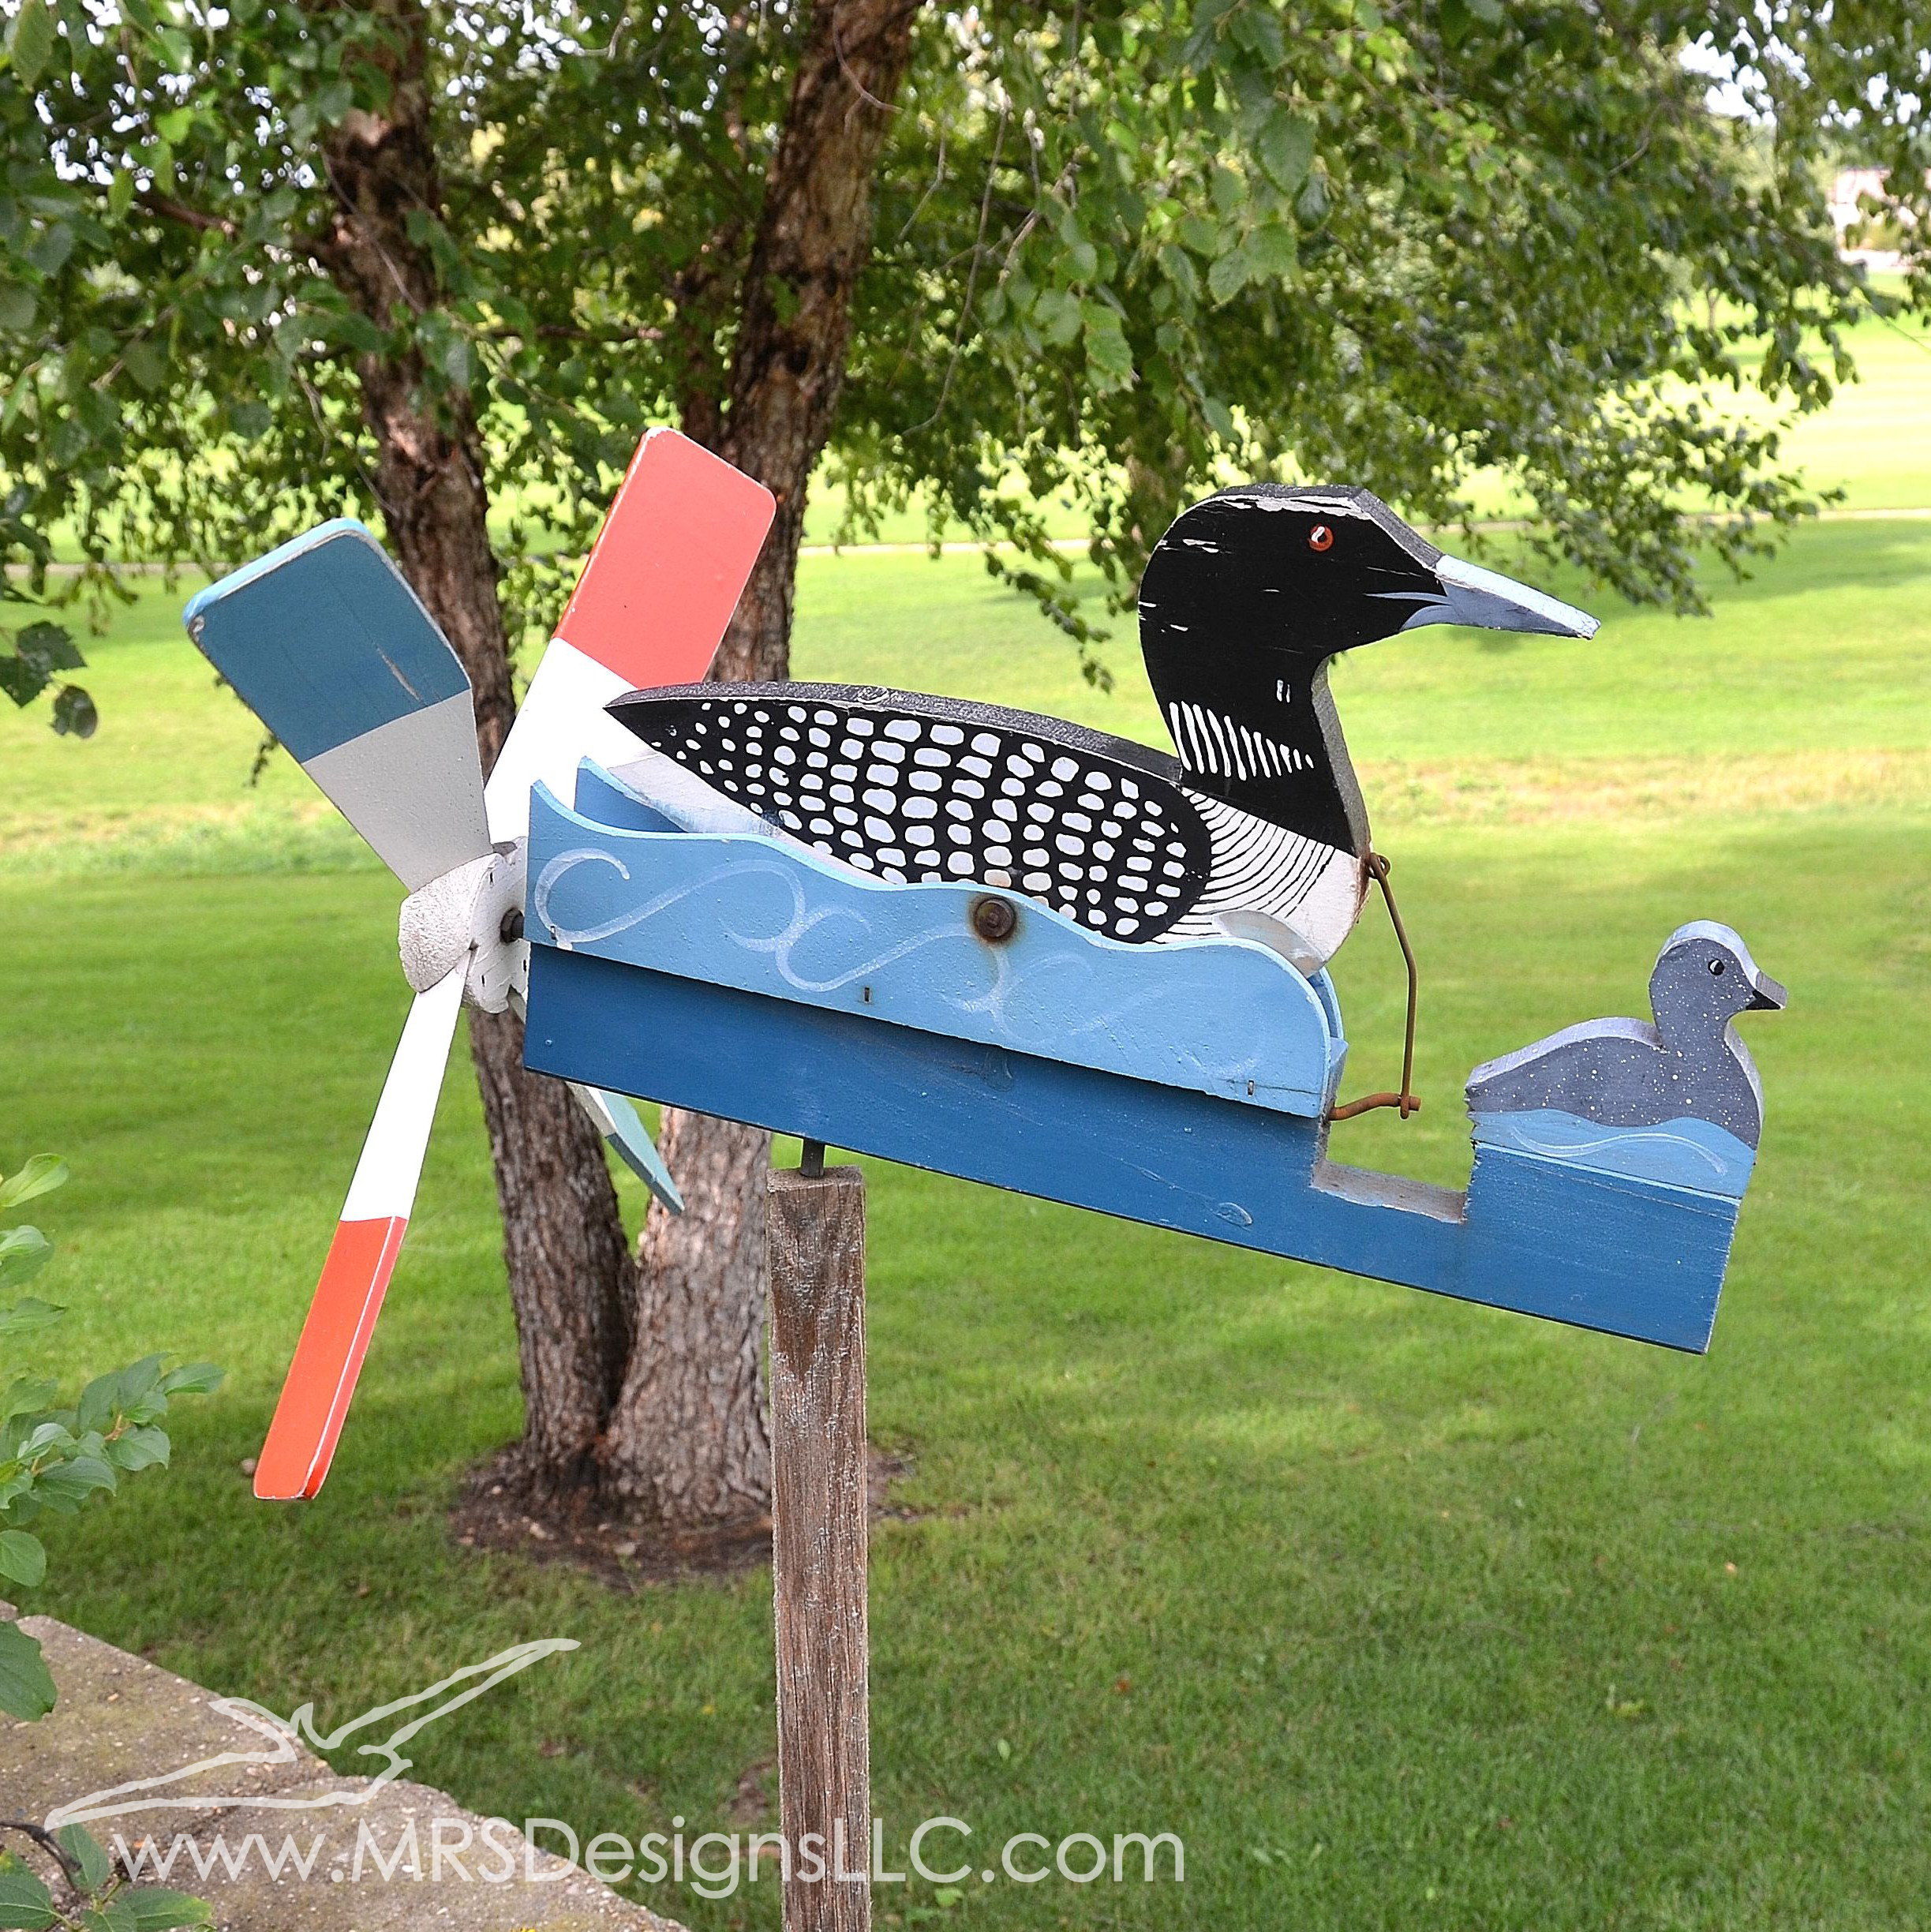 MRS Designs Blog - Loons swimming in the wind.jpg